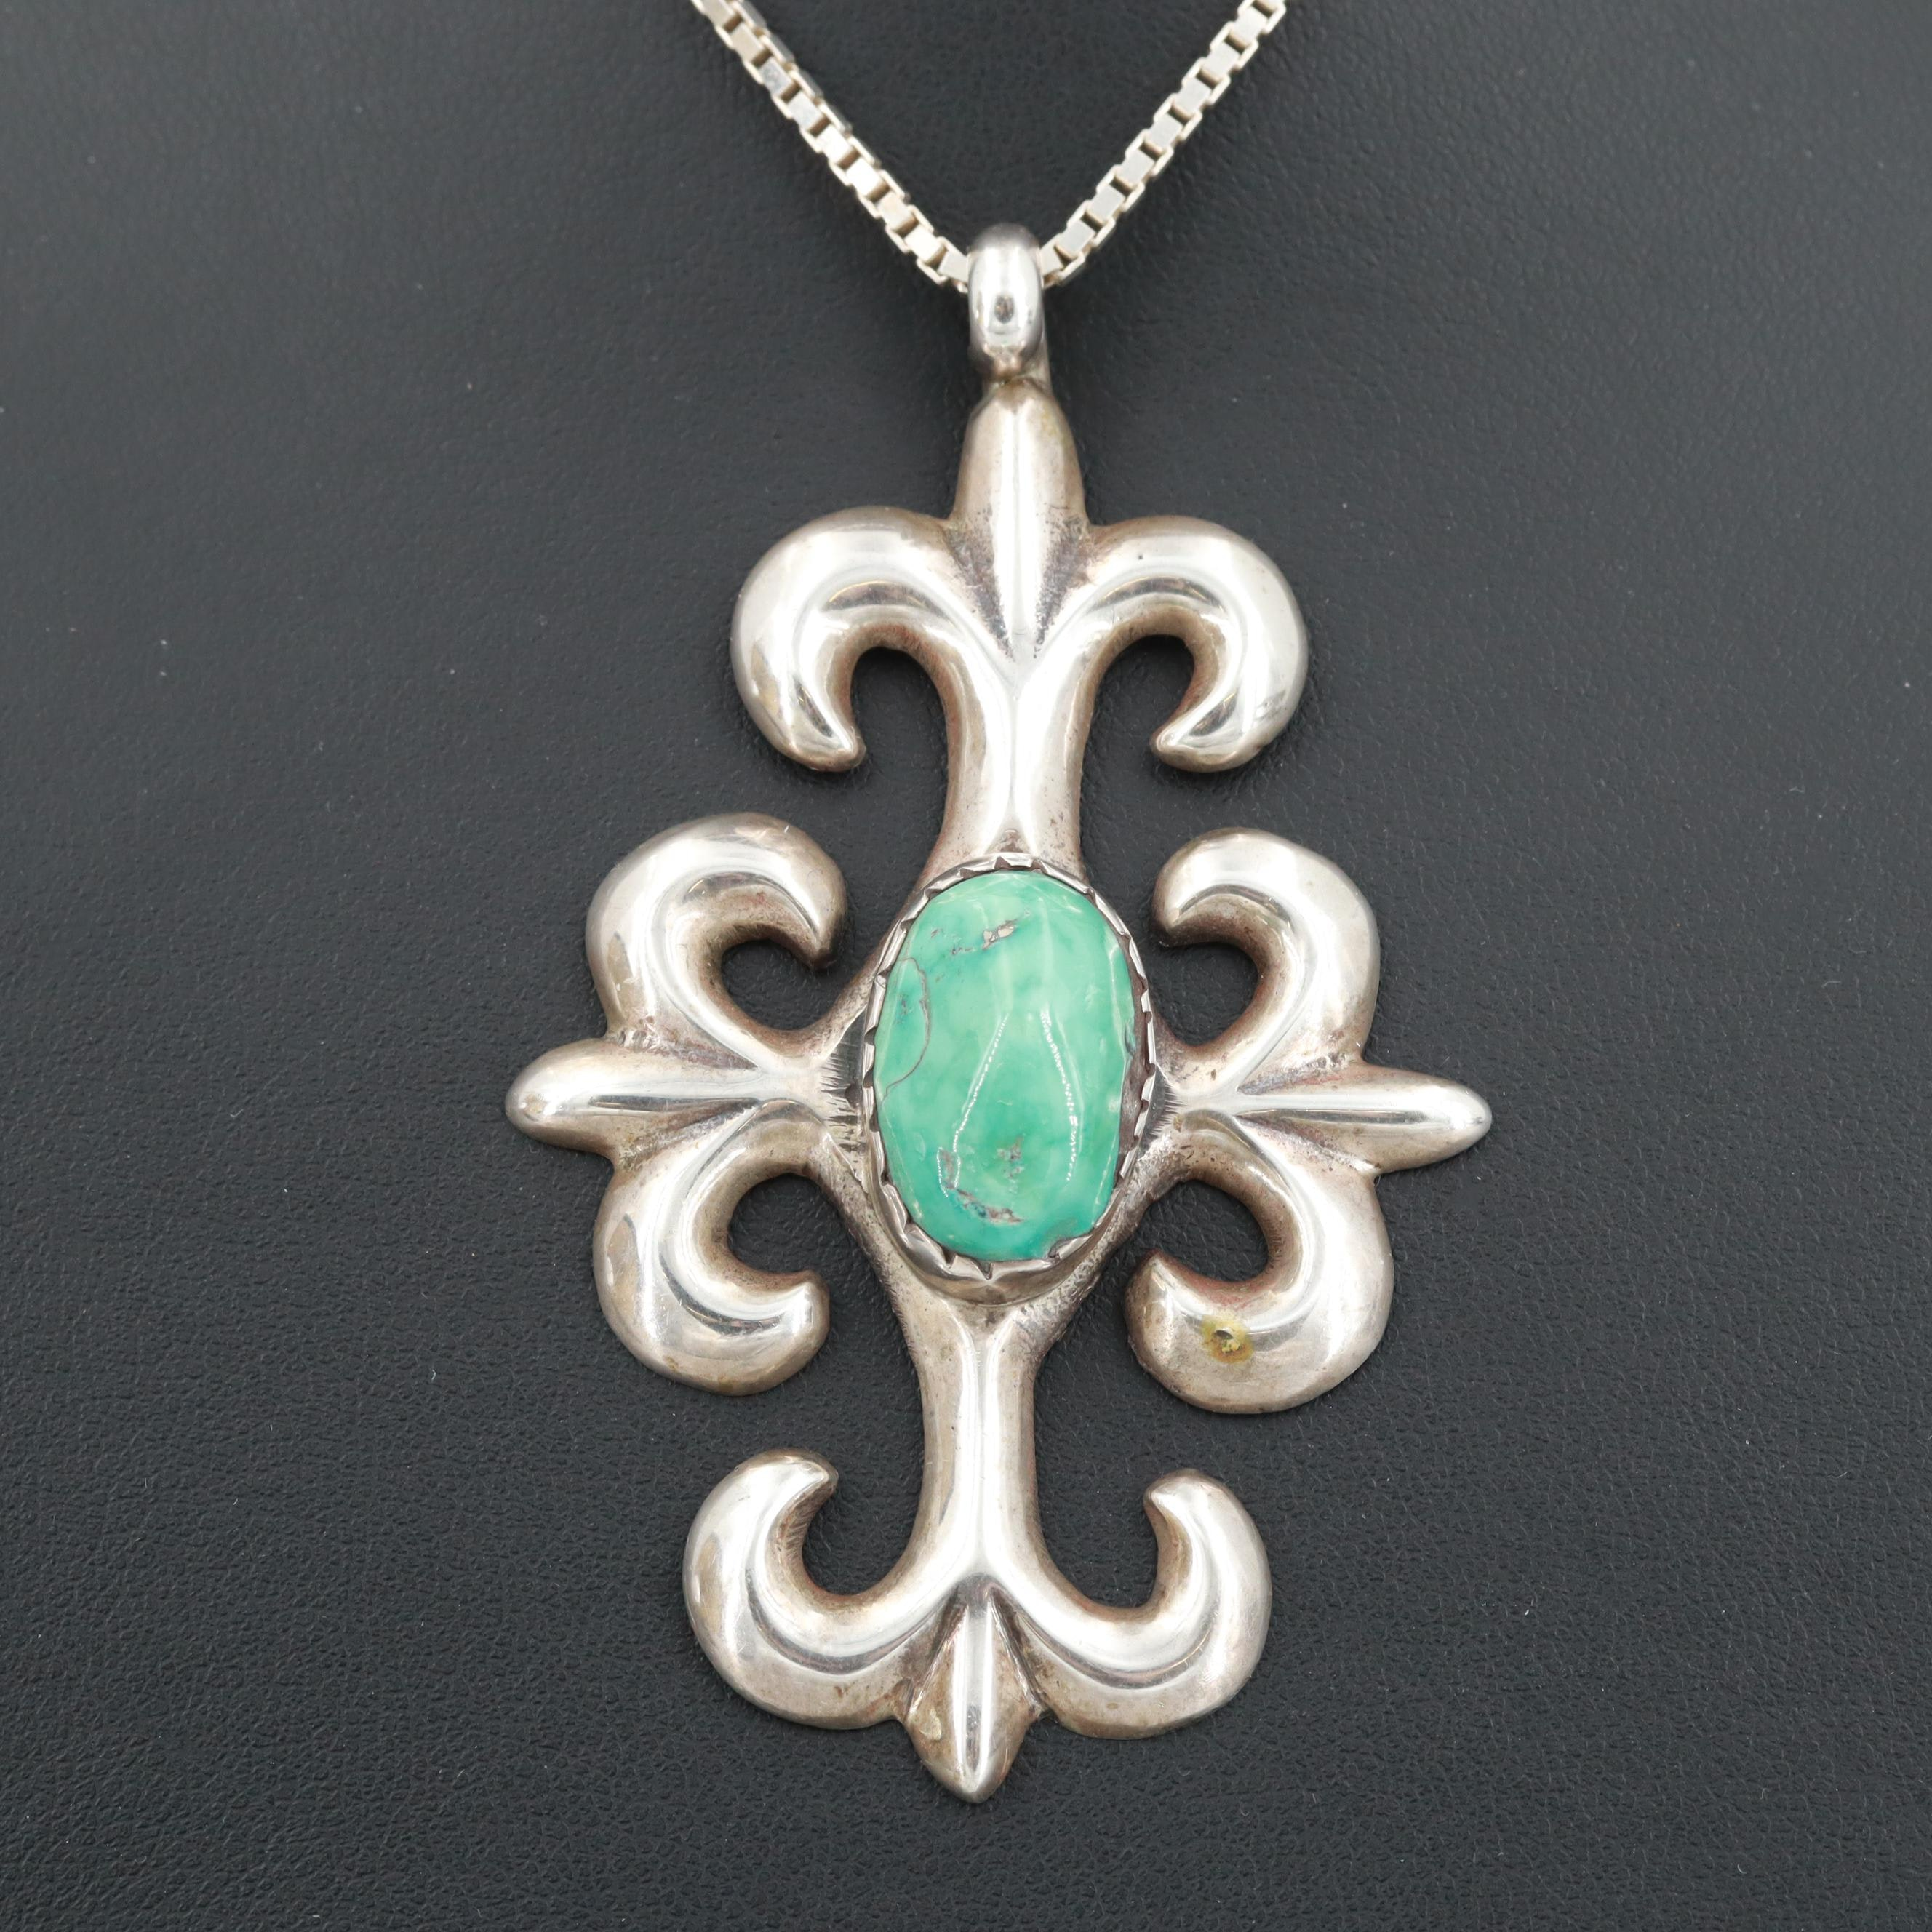 Southwestern Sterling Silver Sand Cast Turquoise Necklace